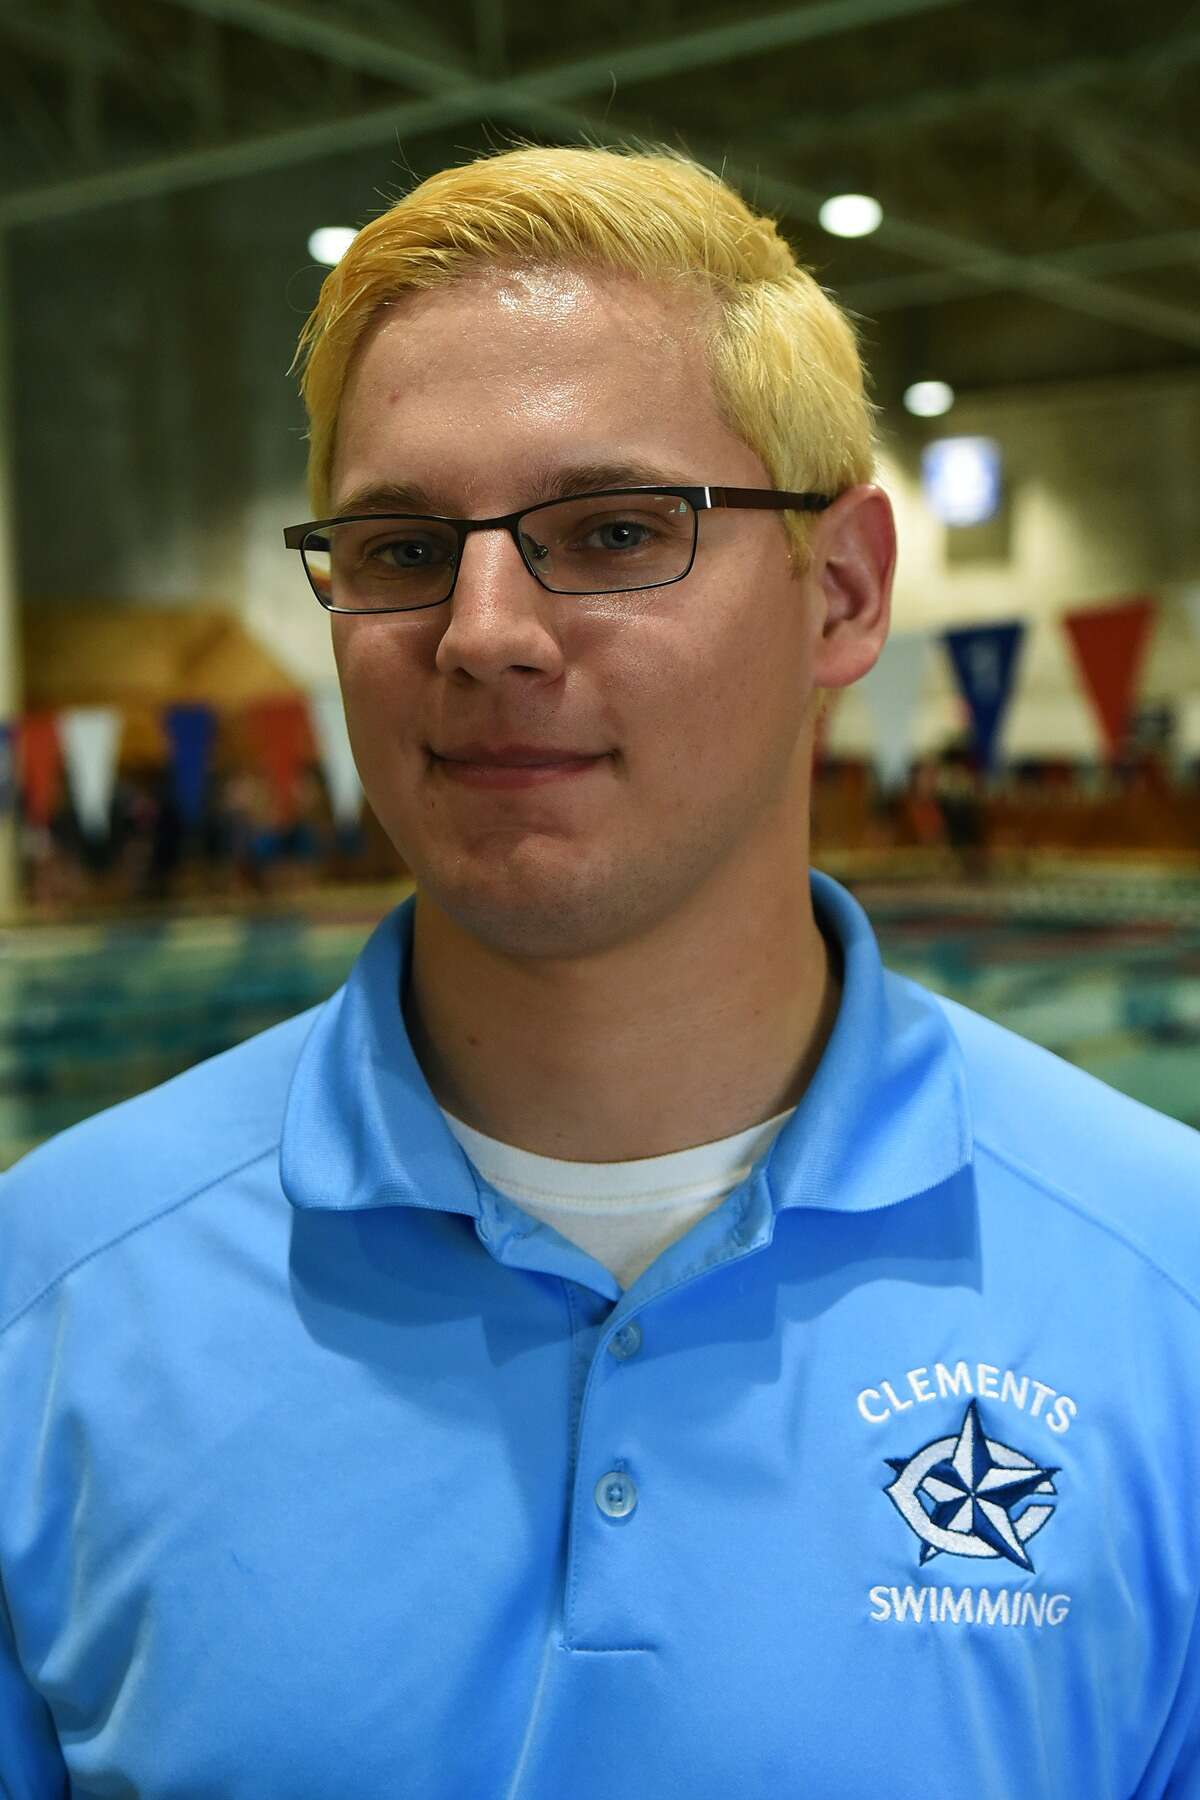 Clements Head Swim Coach Matt Tomas